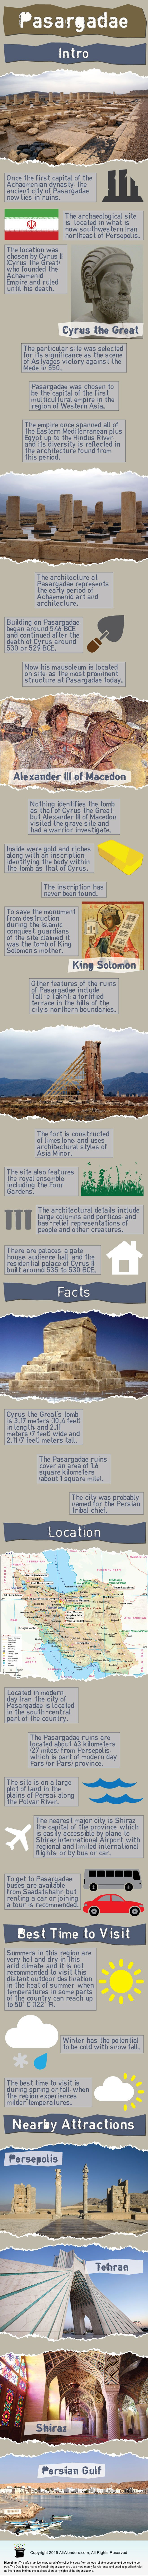 Pasargadae Facts and Infographic